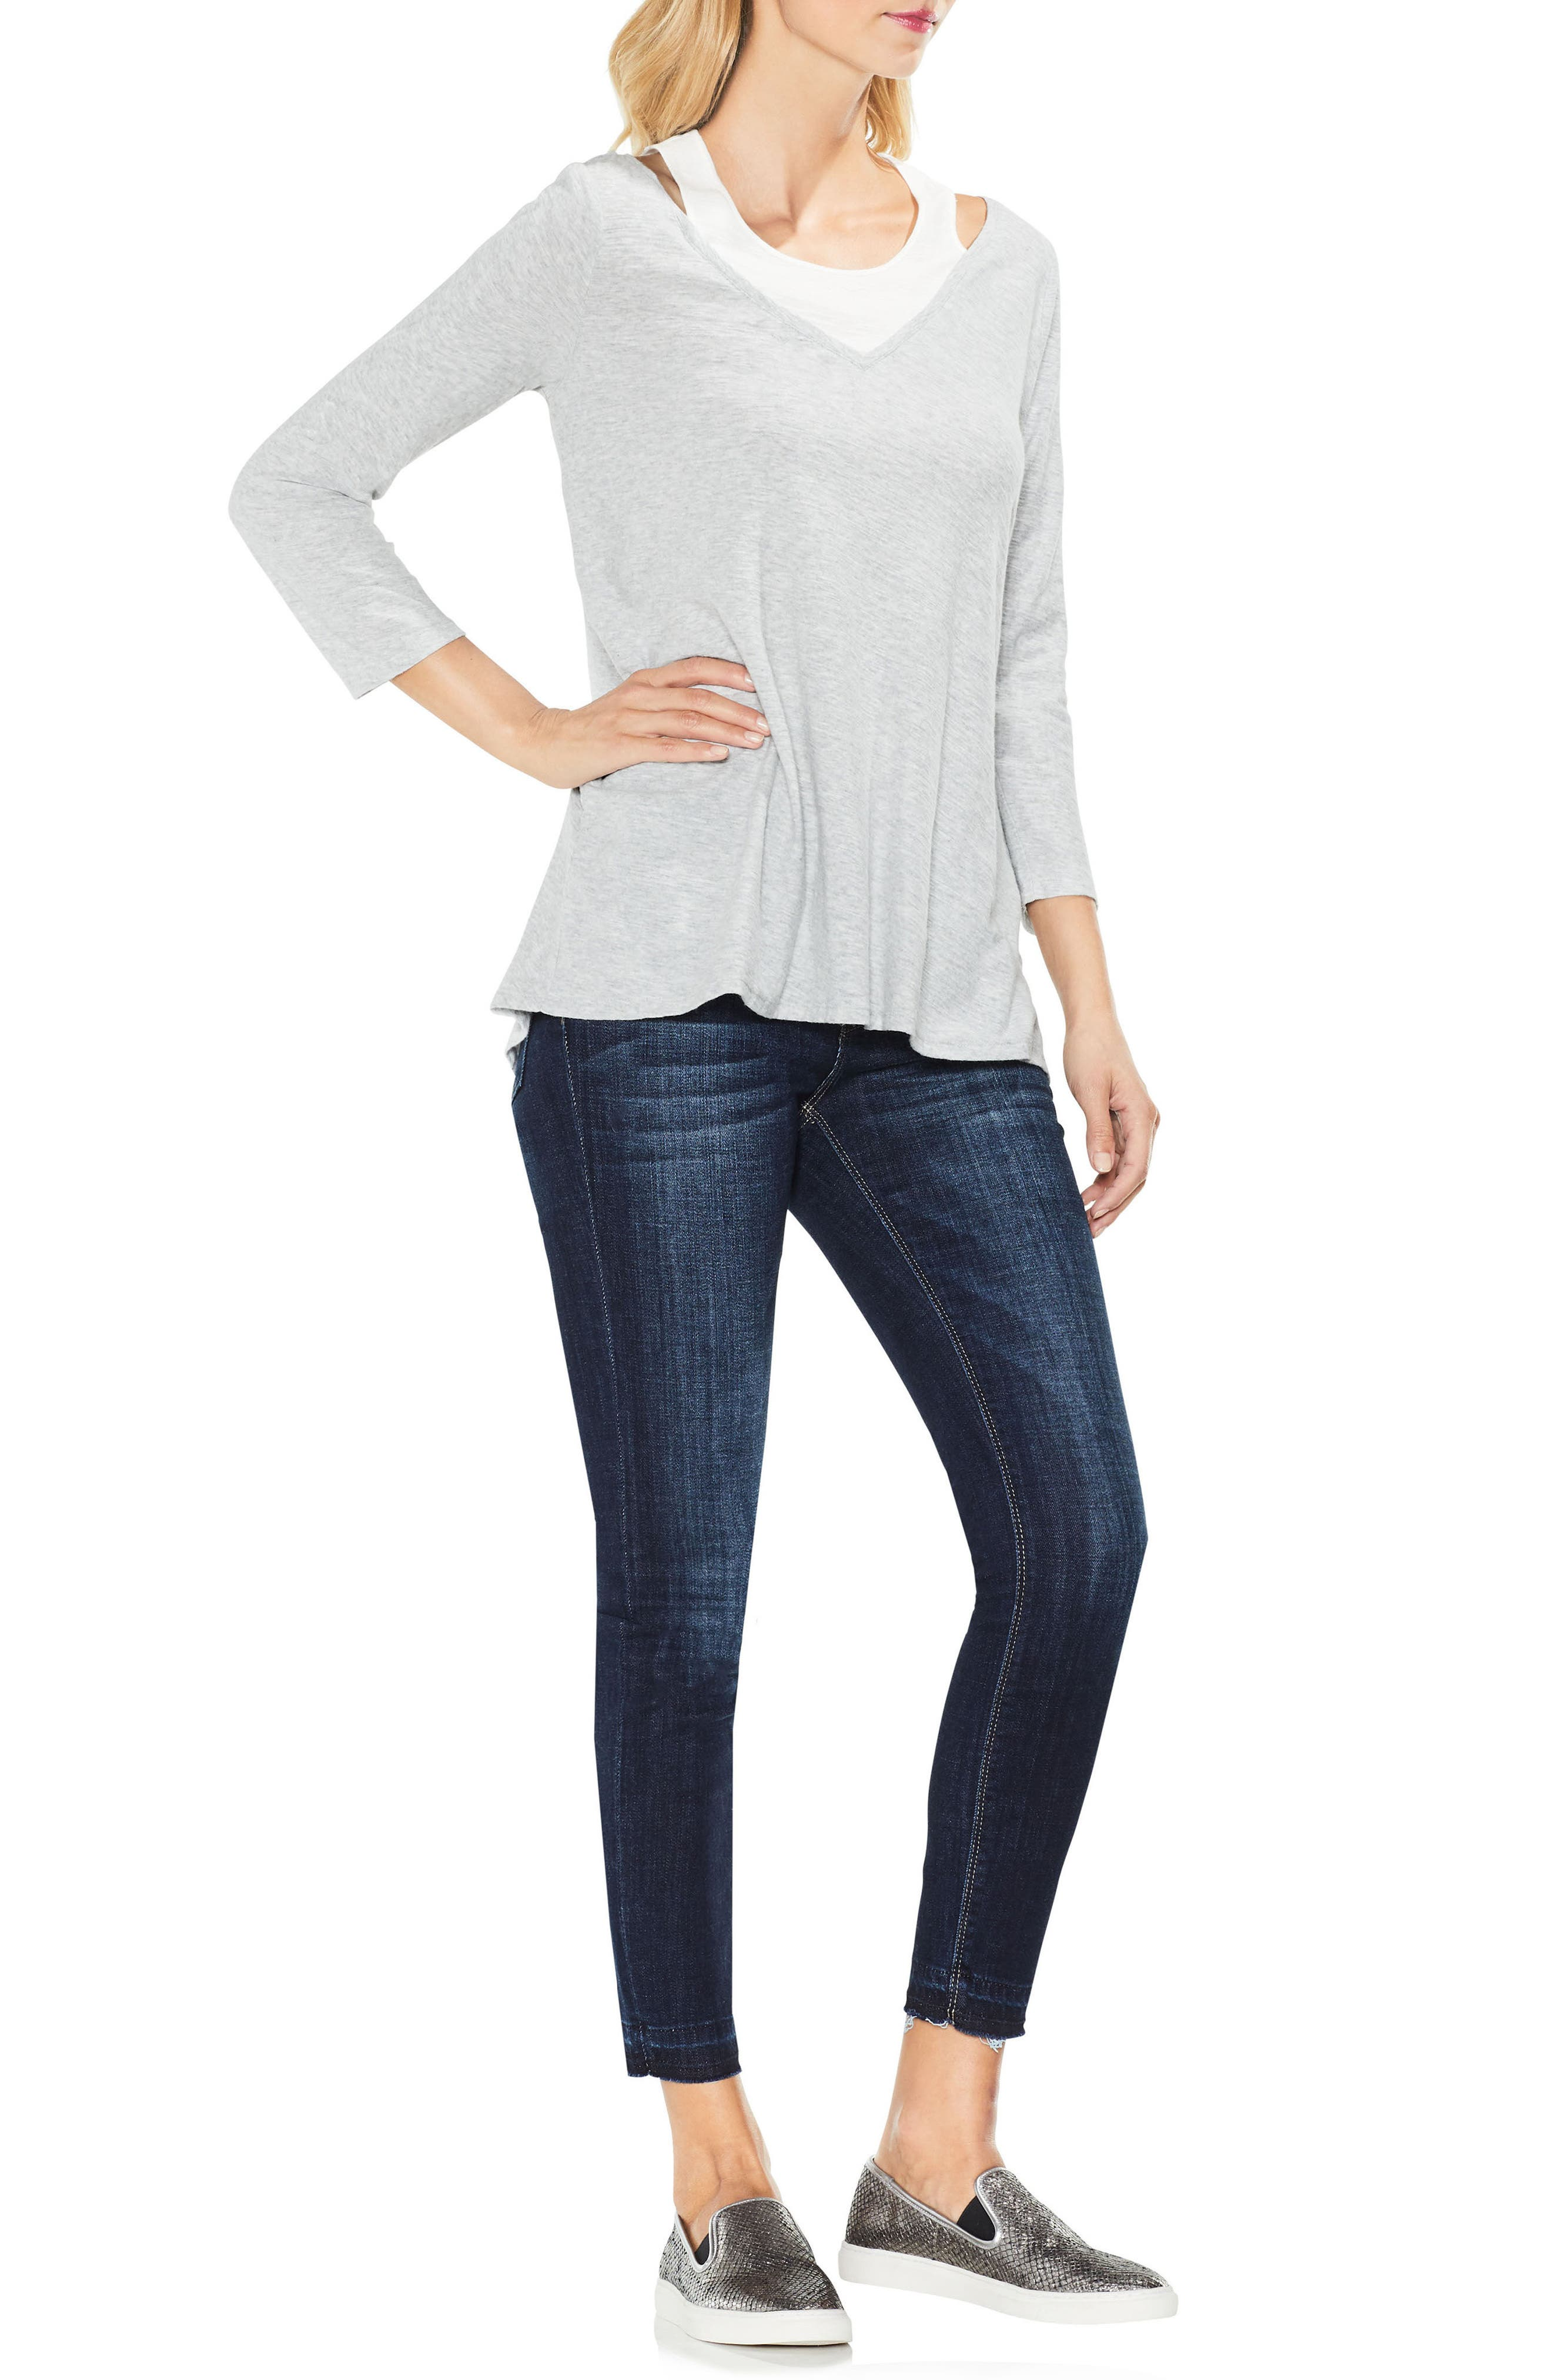 Two by Vince Camuto Layered Top,                             Alternate thumbnail 4, color,                             050